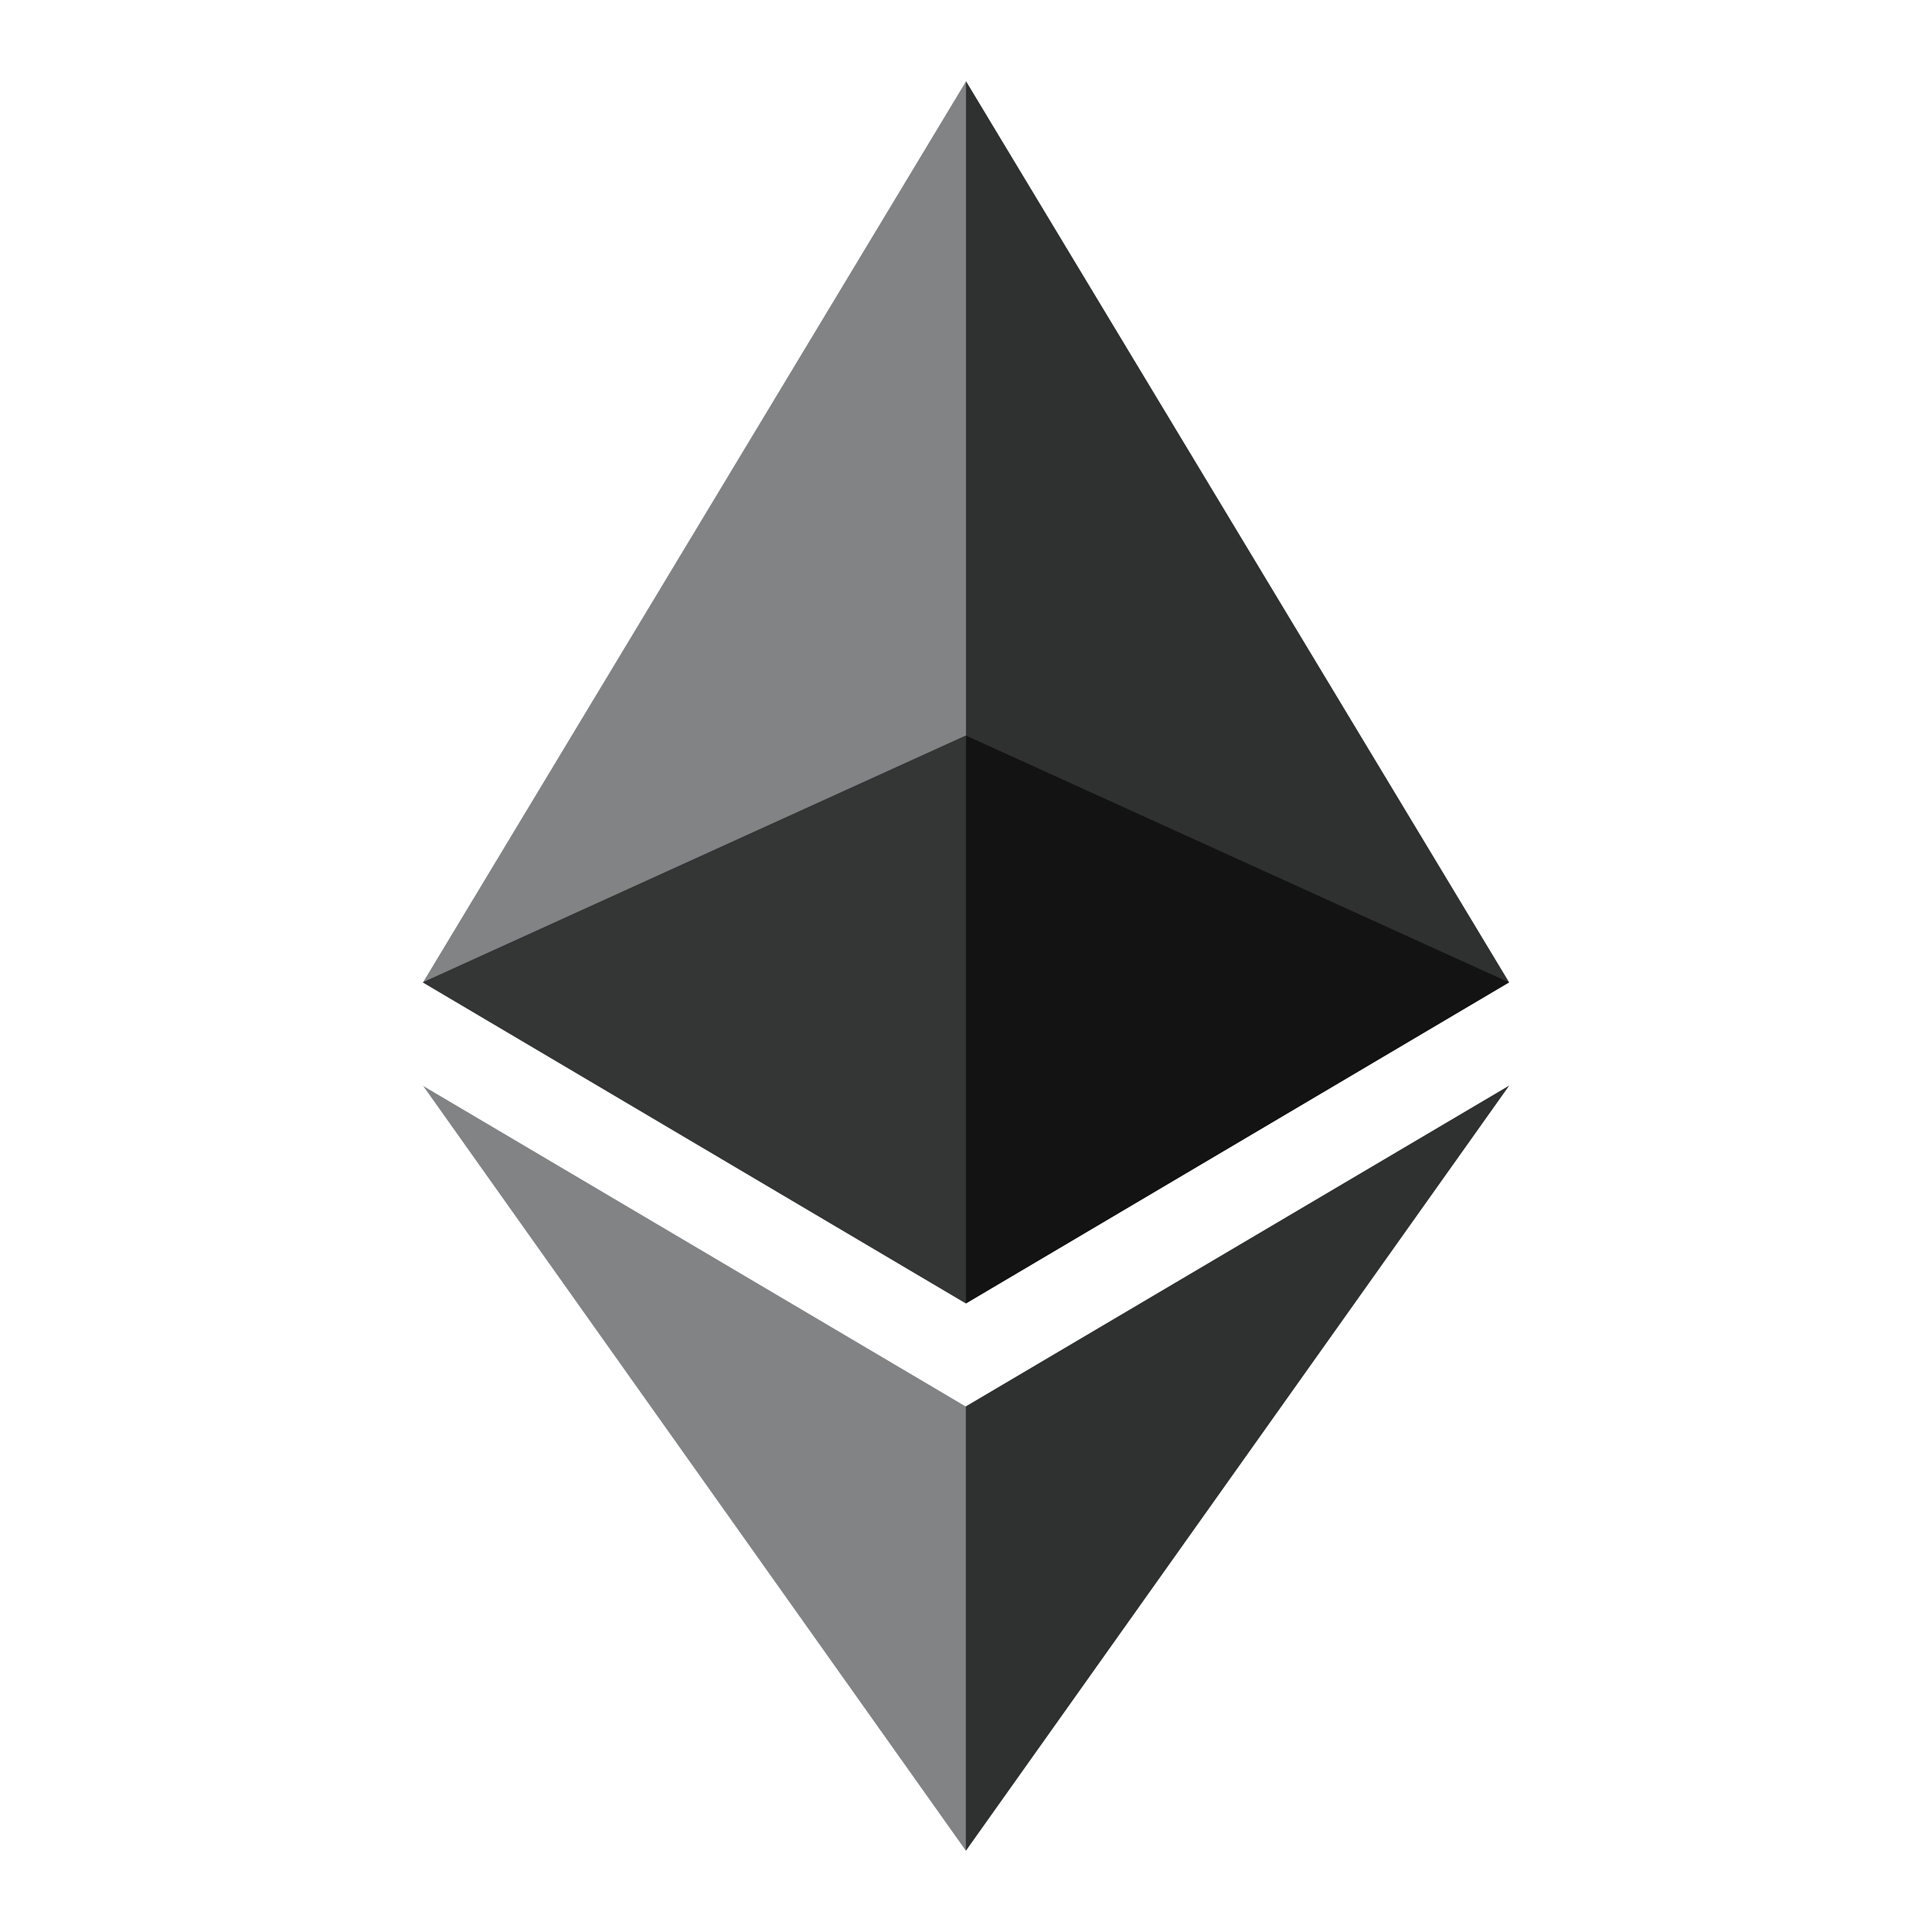 Ethereum logo png. Cryptocurrency initial offering icon